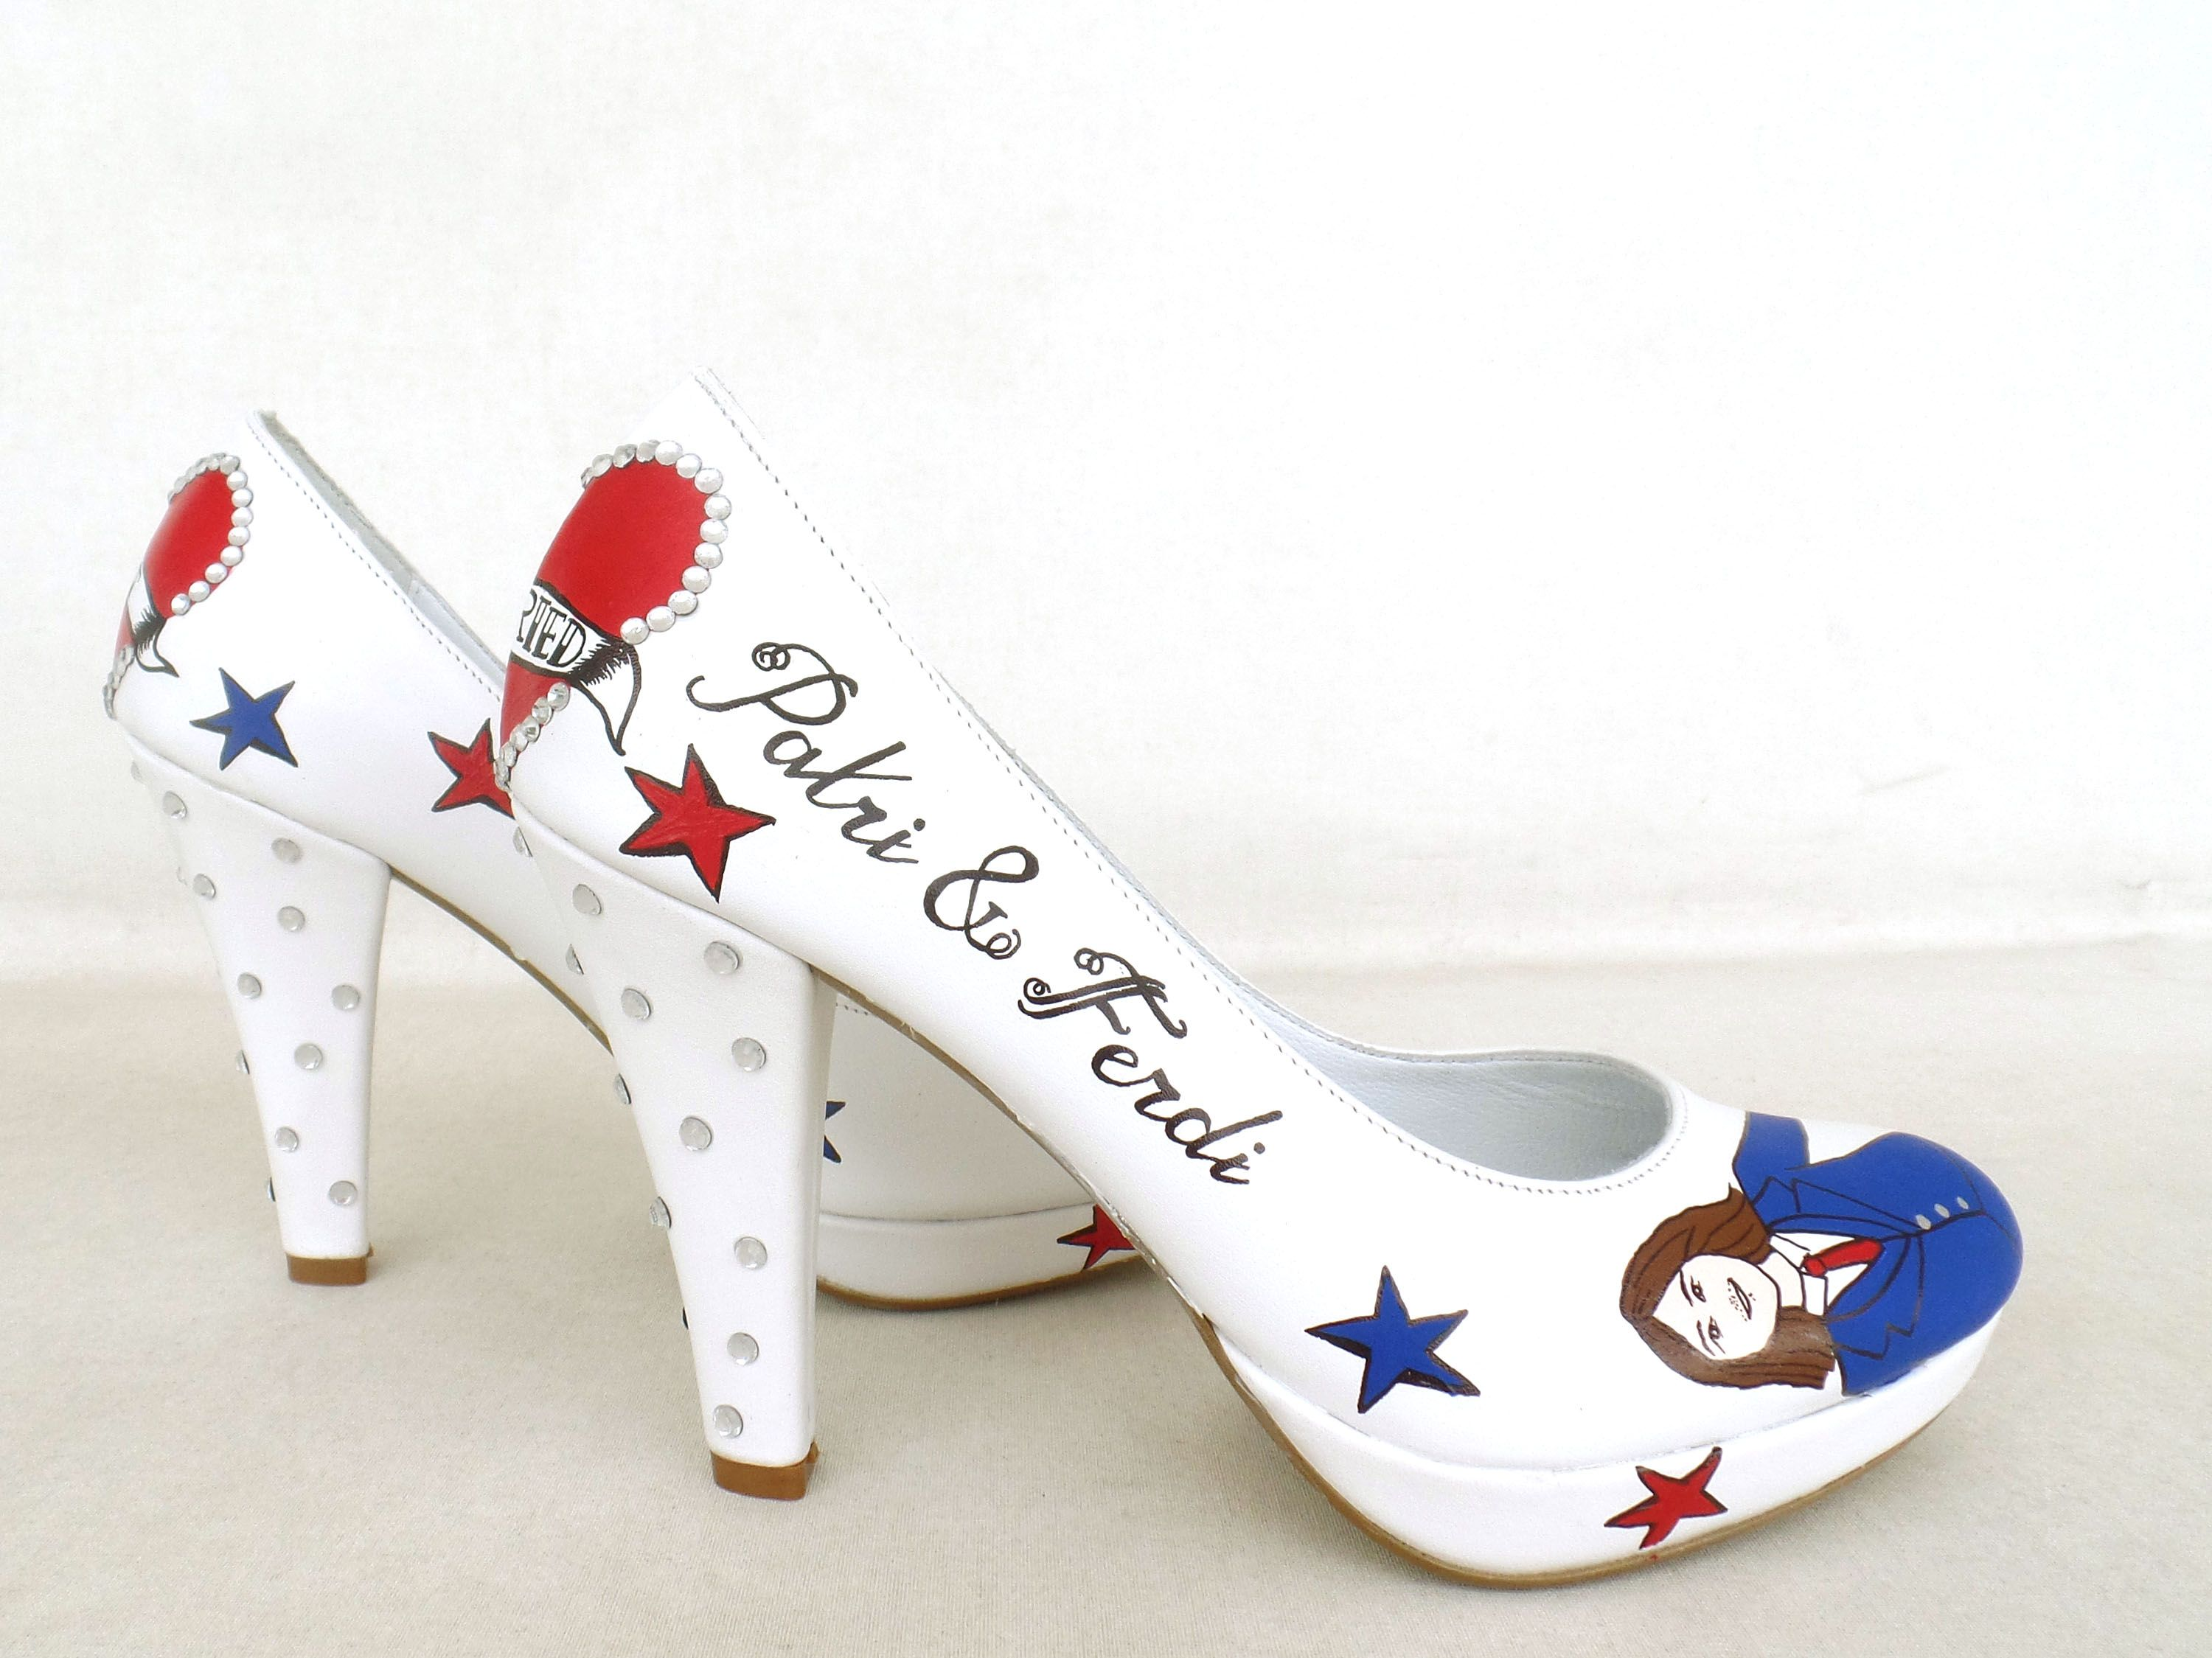 Handpainted custom design bridal shoes with rockabilly theme :) https://www.etsy.com/shop/KUKLAfashiondesign